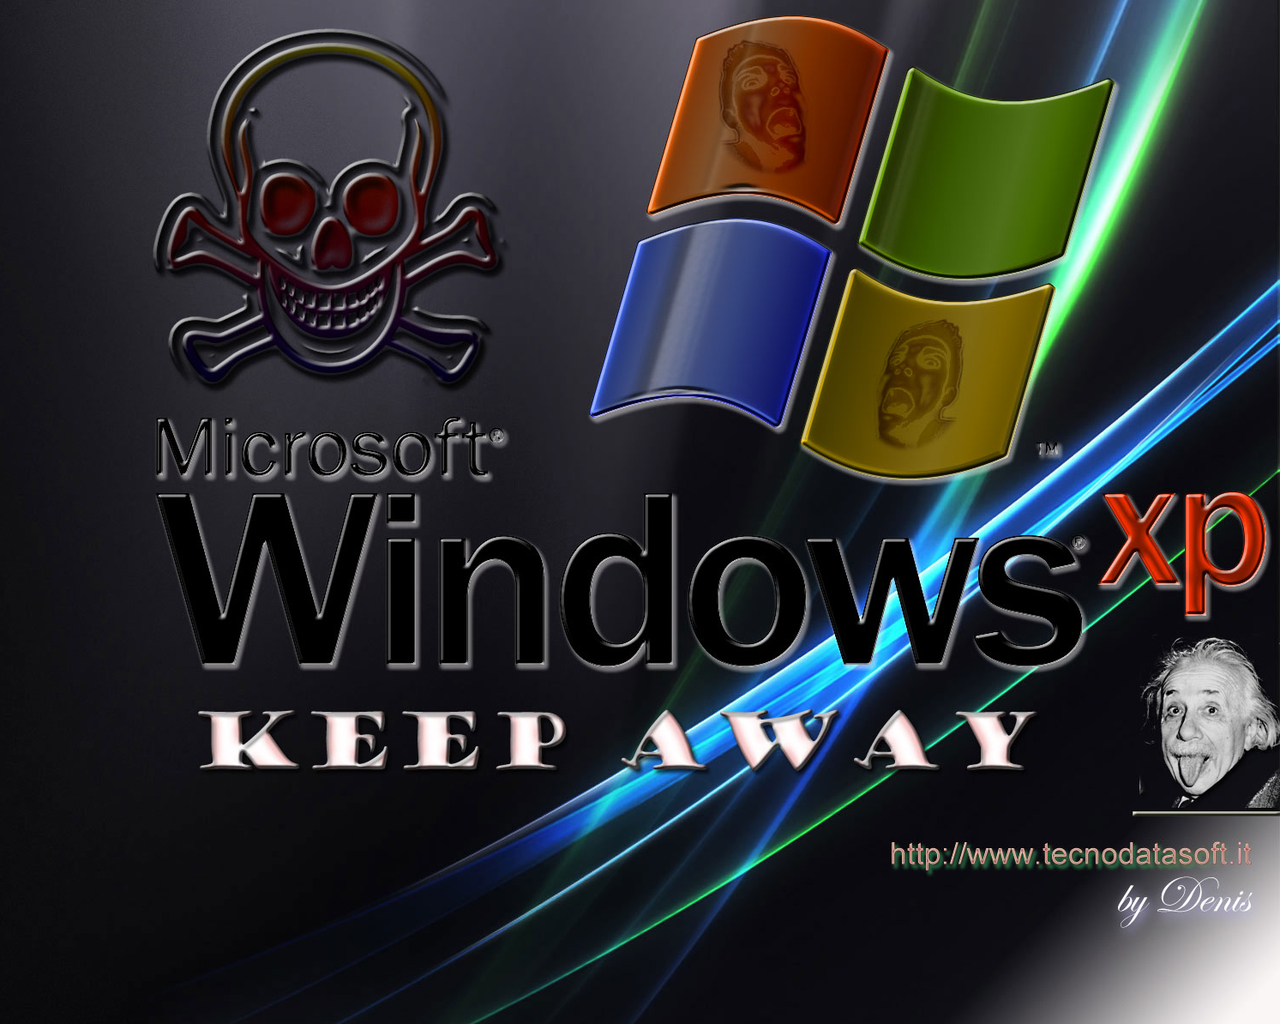 Cool Pictures Gallery 40 Cool and Funny Microsoft Windows Wallpapers 1280x1024